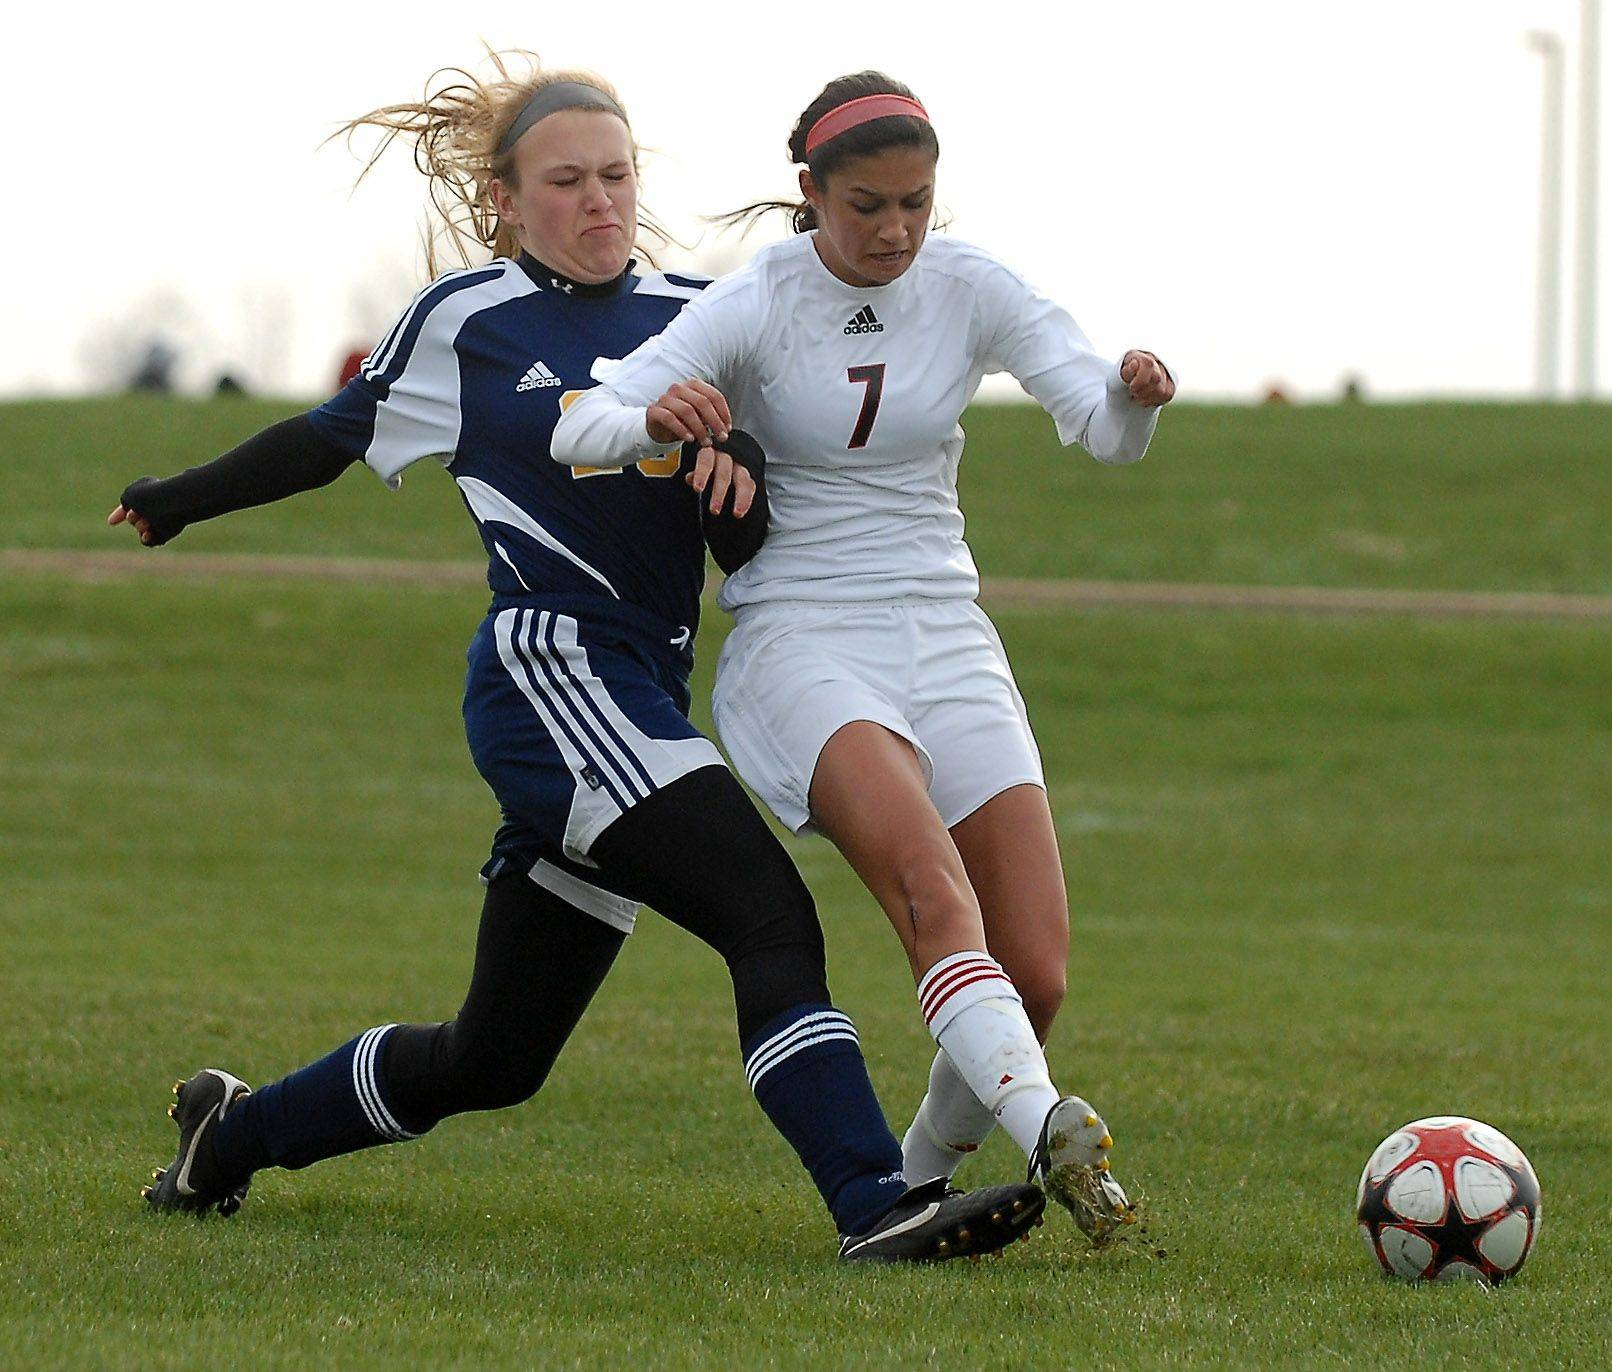 Huntley's Delaney Loprieno and Glenbrook South's Lauren Sroubek battle for the ball during Thursday's quarterfinal of the Pepsi Showdown in Huntley.